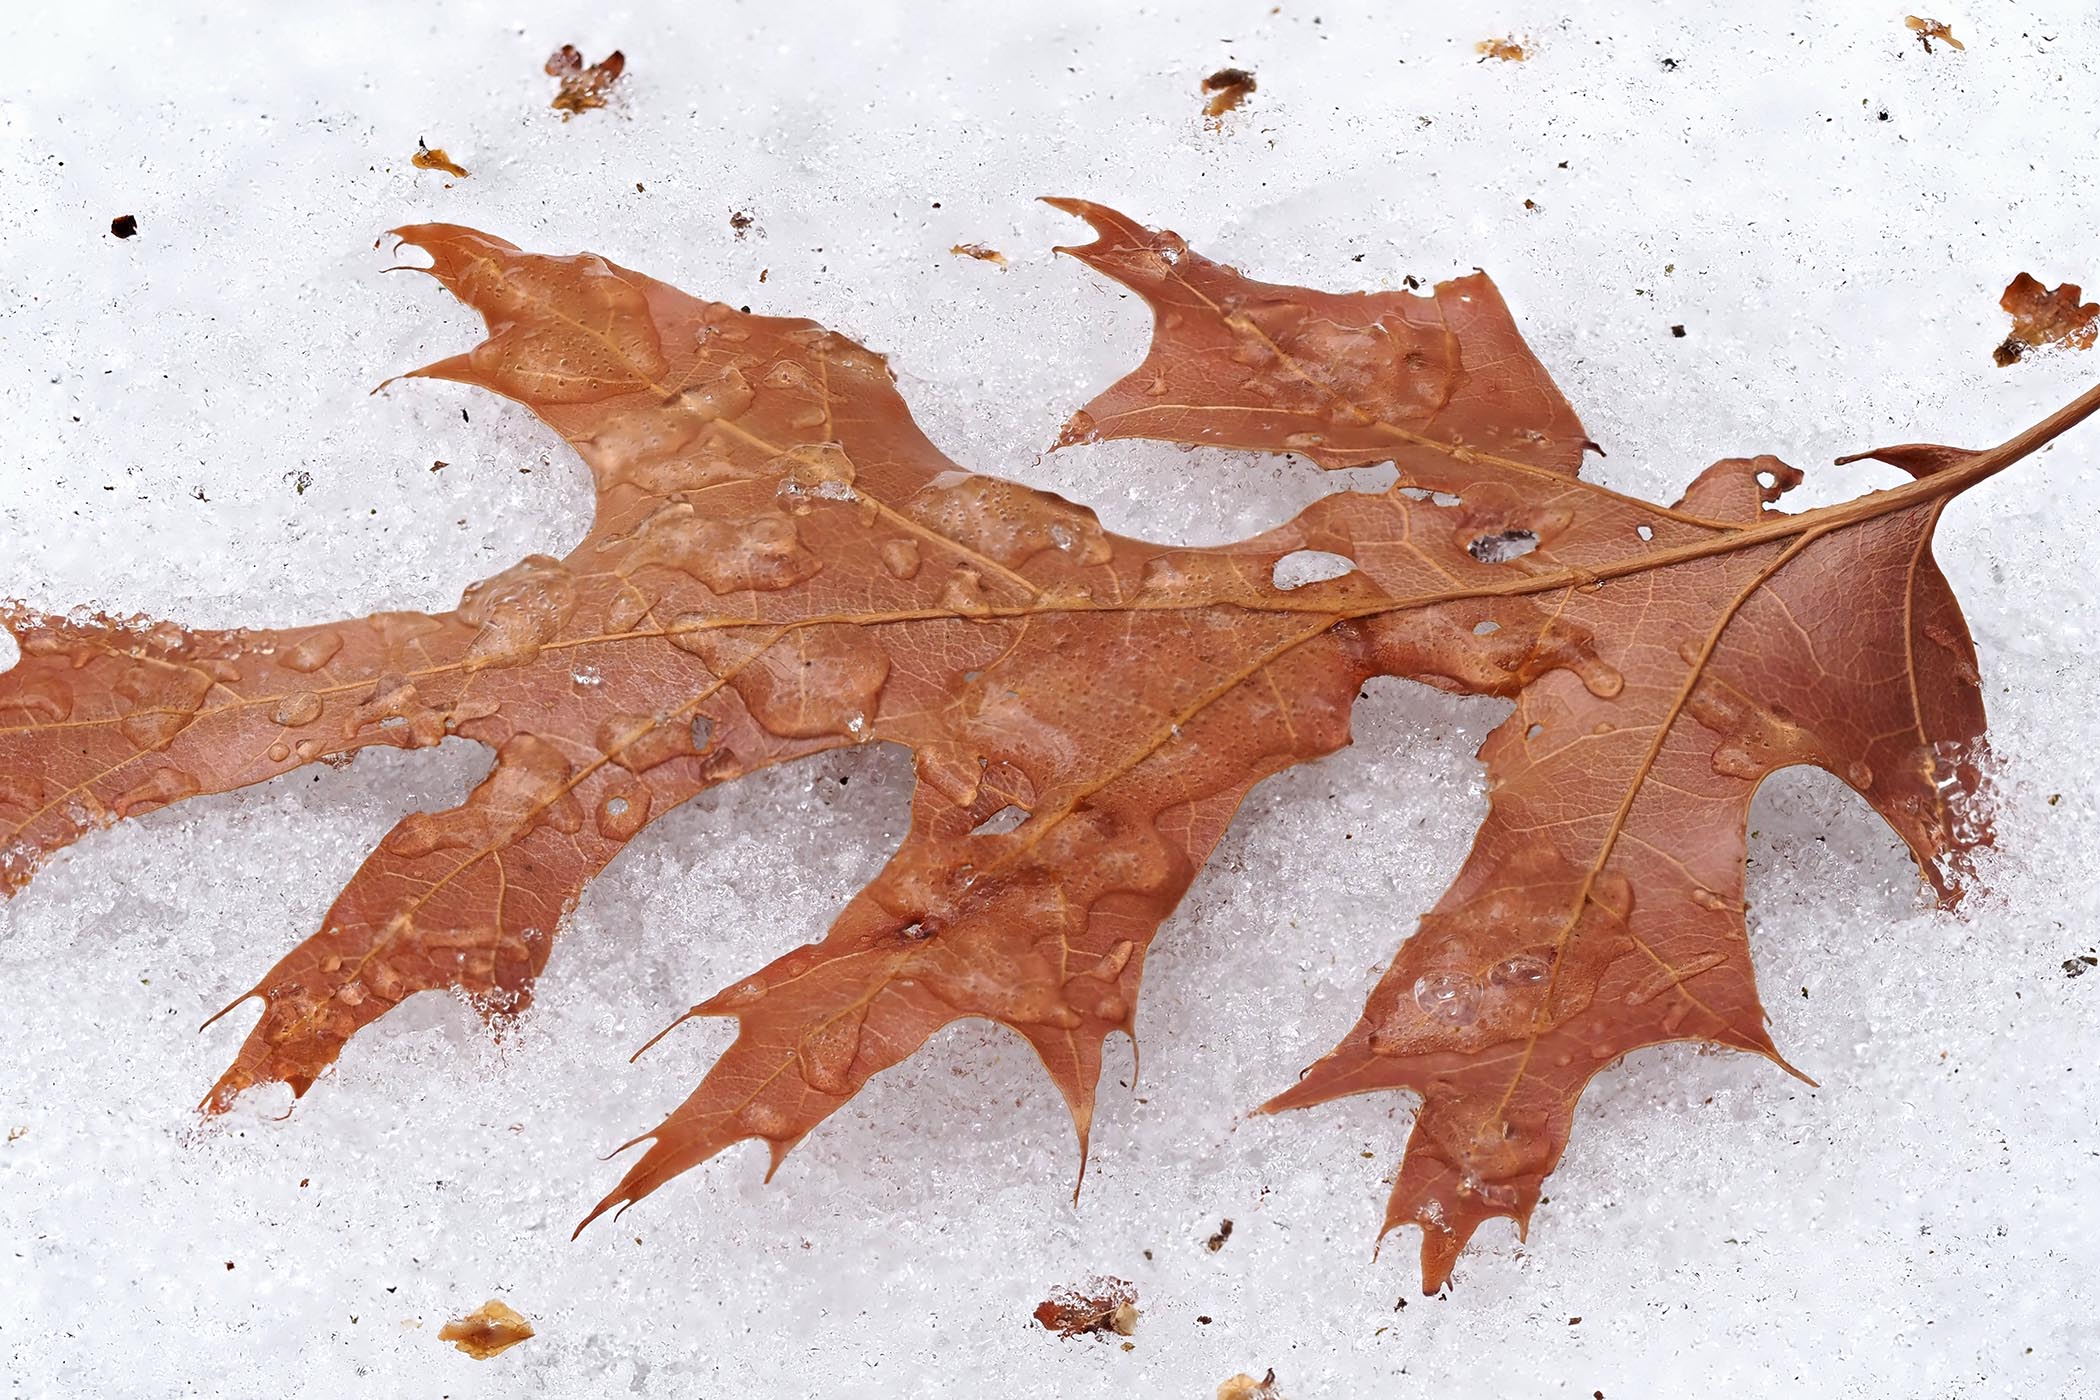 Red Oak leaf on snow, covered with raindrops. Lang Elliott.